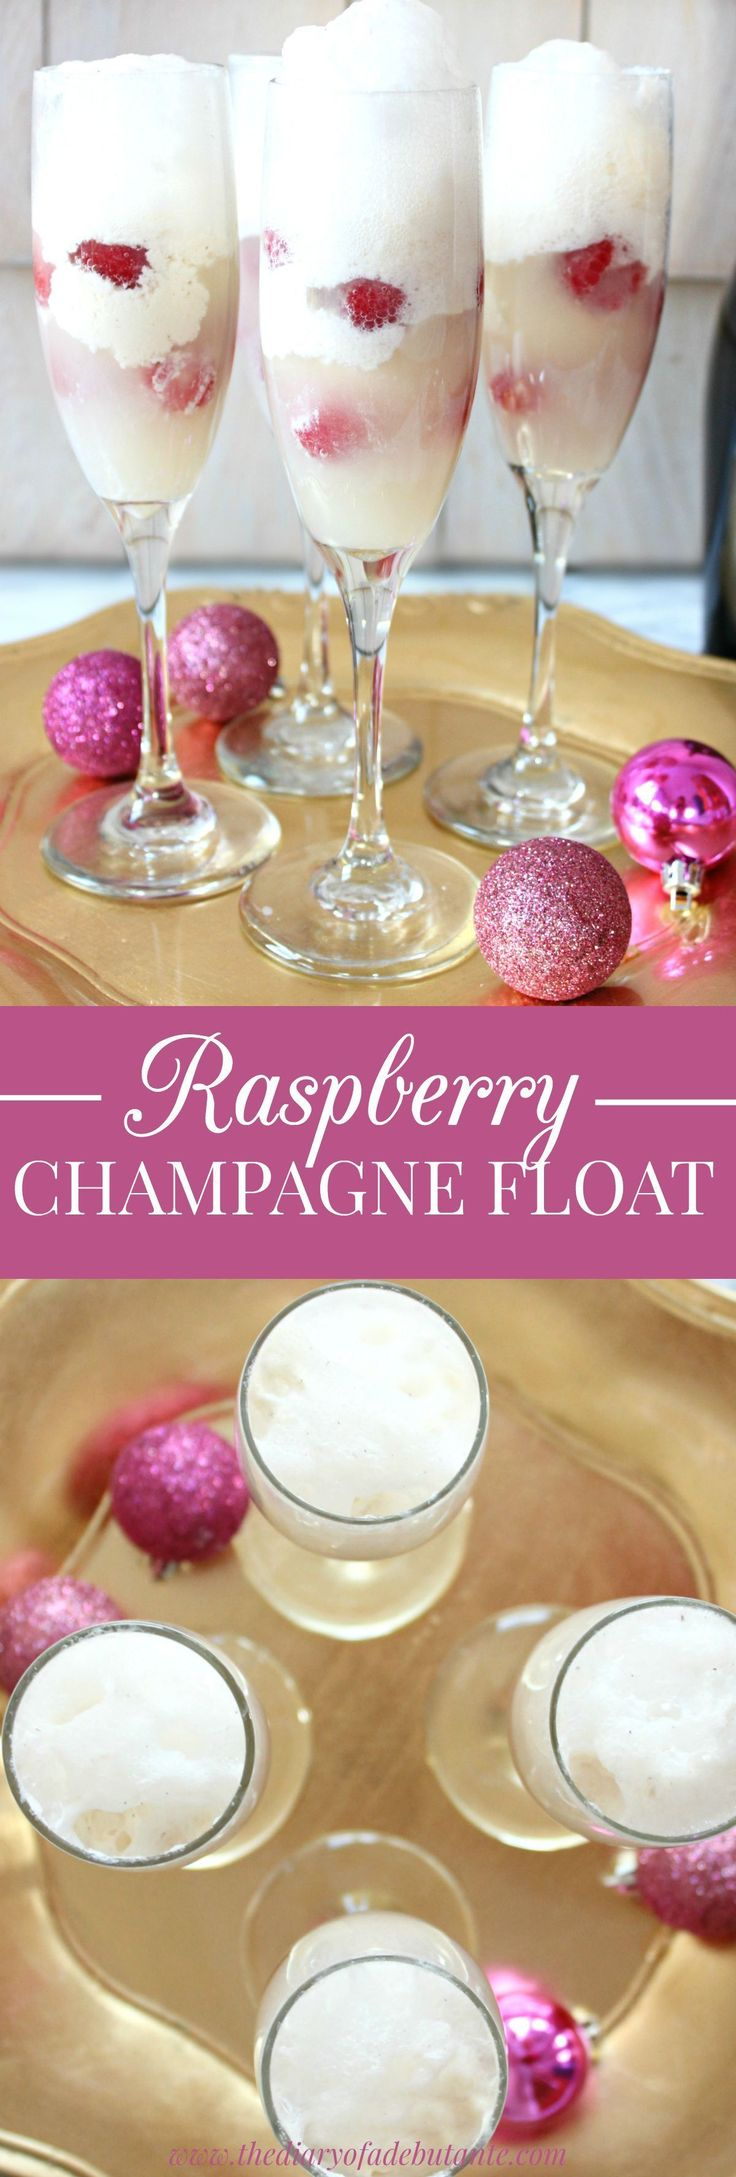 Raspberry Champagne Float. This sweet alcoholic cocktail recipe is perfect for both Christmas and New Year's parties. It could also be a signature drink idea for a wedding or black tie party. Just combine ice cream with raspberries and the champagne or prosecco of your choice! #Champagne